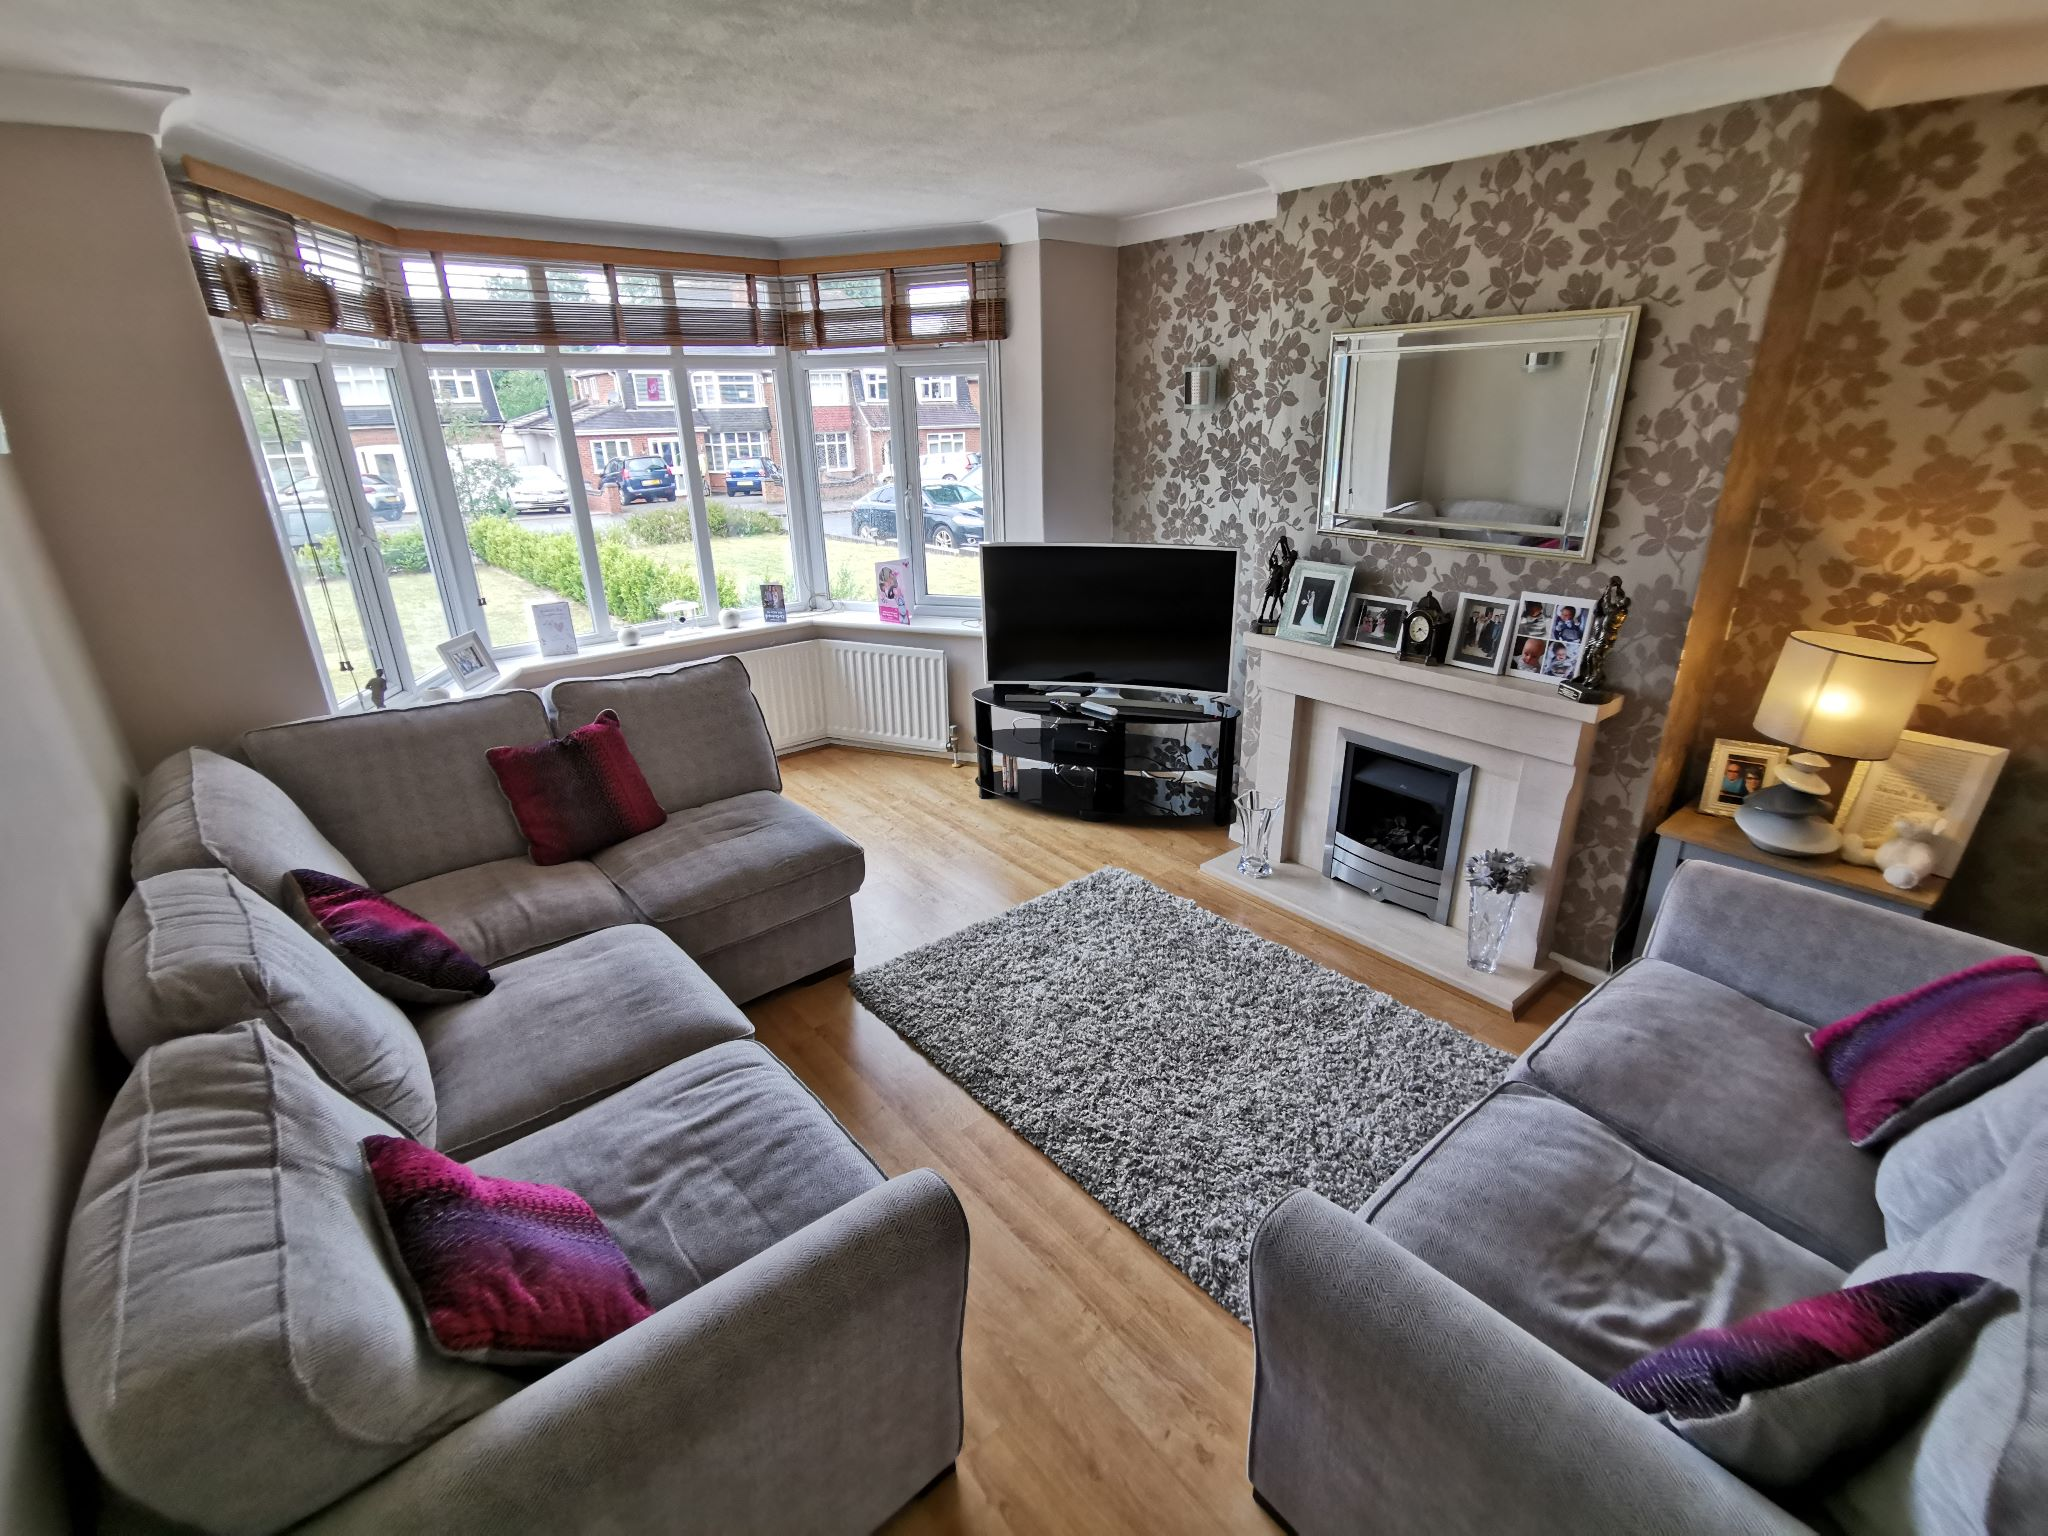 4 bedroom semi-detached house Let Agreed in Solihull - Photograph 3.